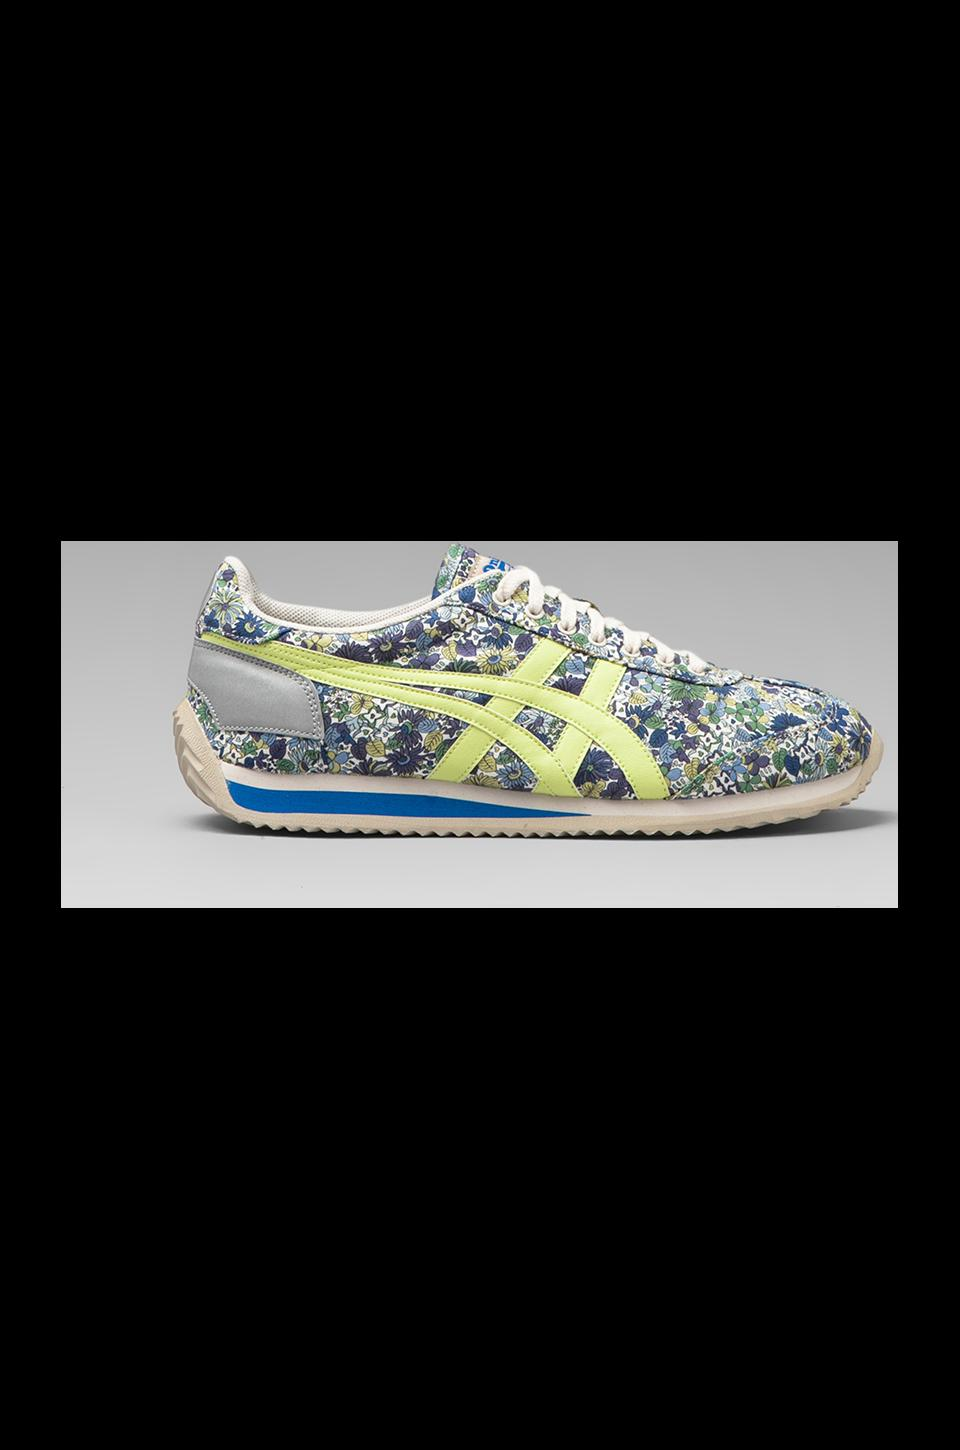 Onitsuka Tiger LIBERTY ART California 78 in Pebble/Lime